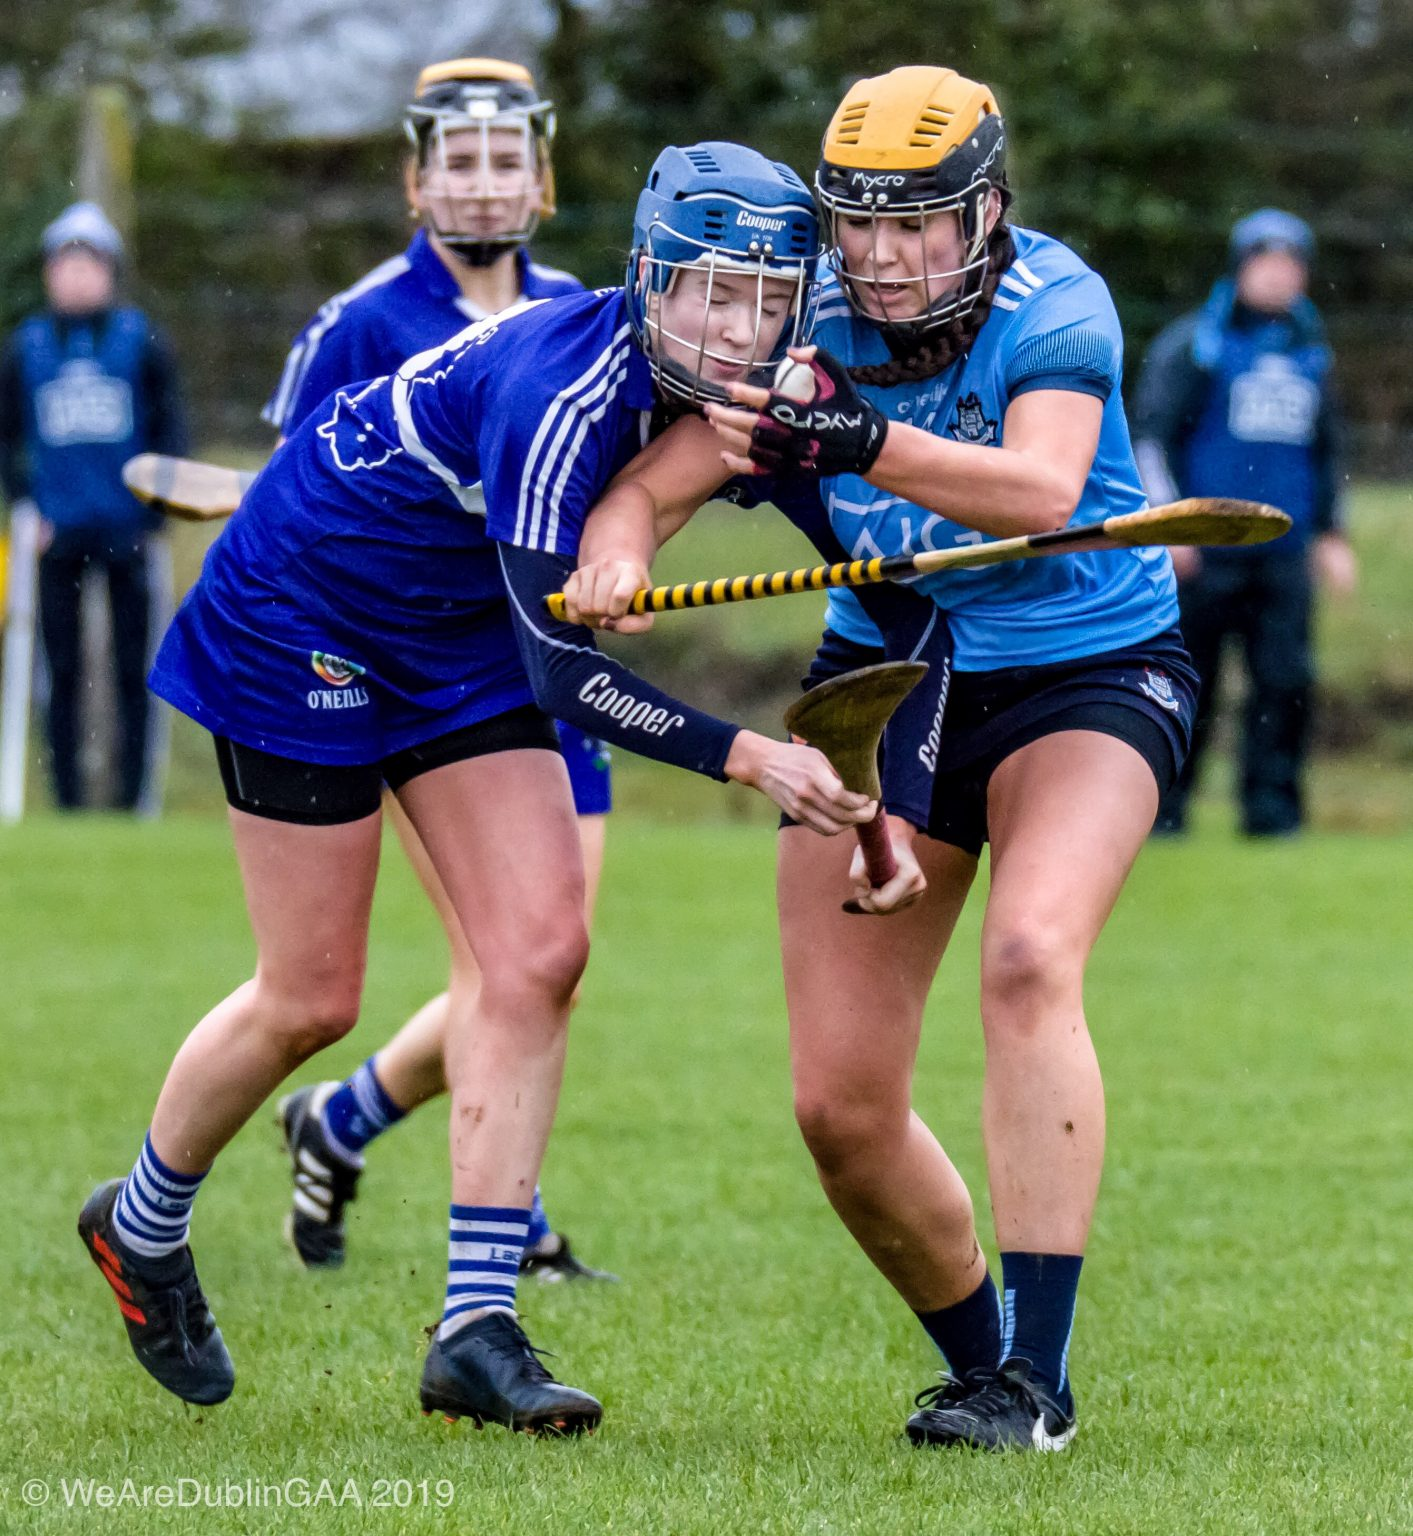 Dublin Camogie player in a sky blue jersey,navy skort and yellow and blue helmet battles with a Laois player in dark blue jersey, dark blue skort and helmet during the Dublin Intermediates National California League game